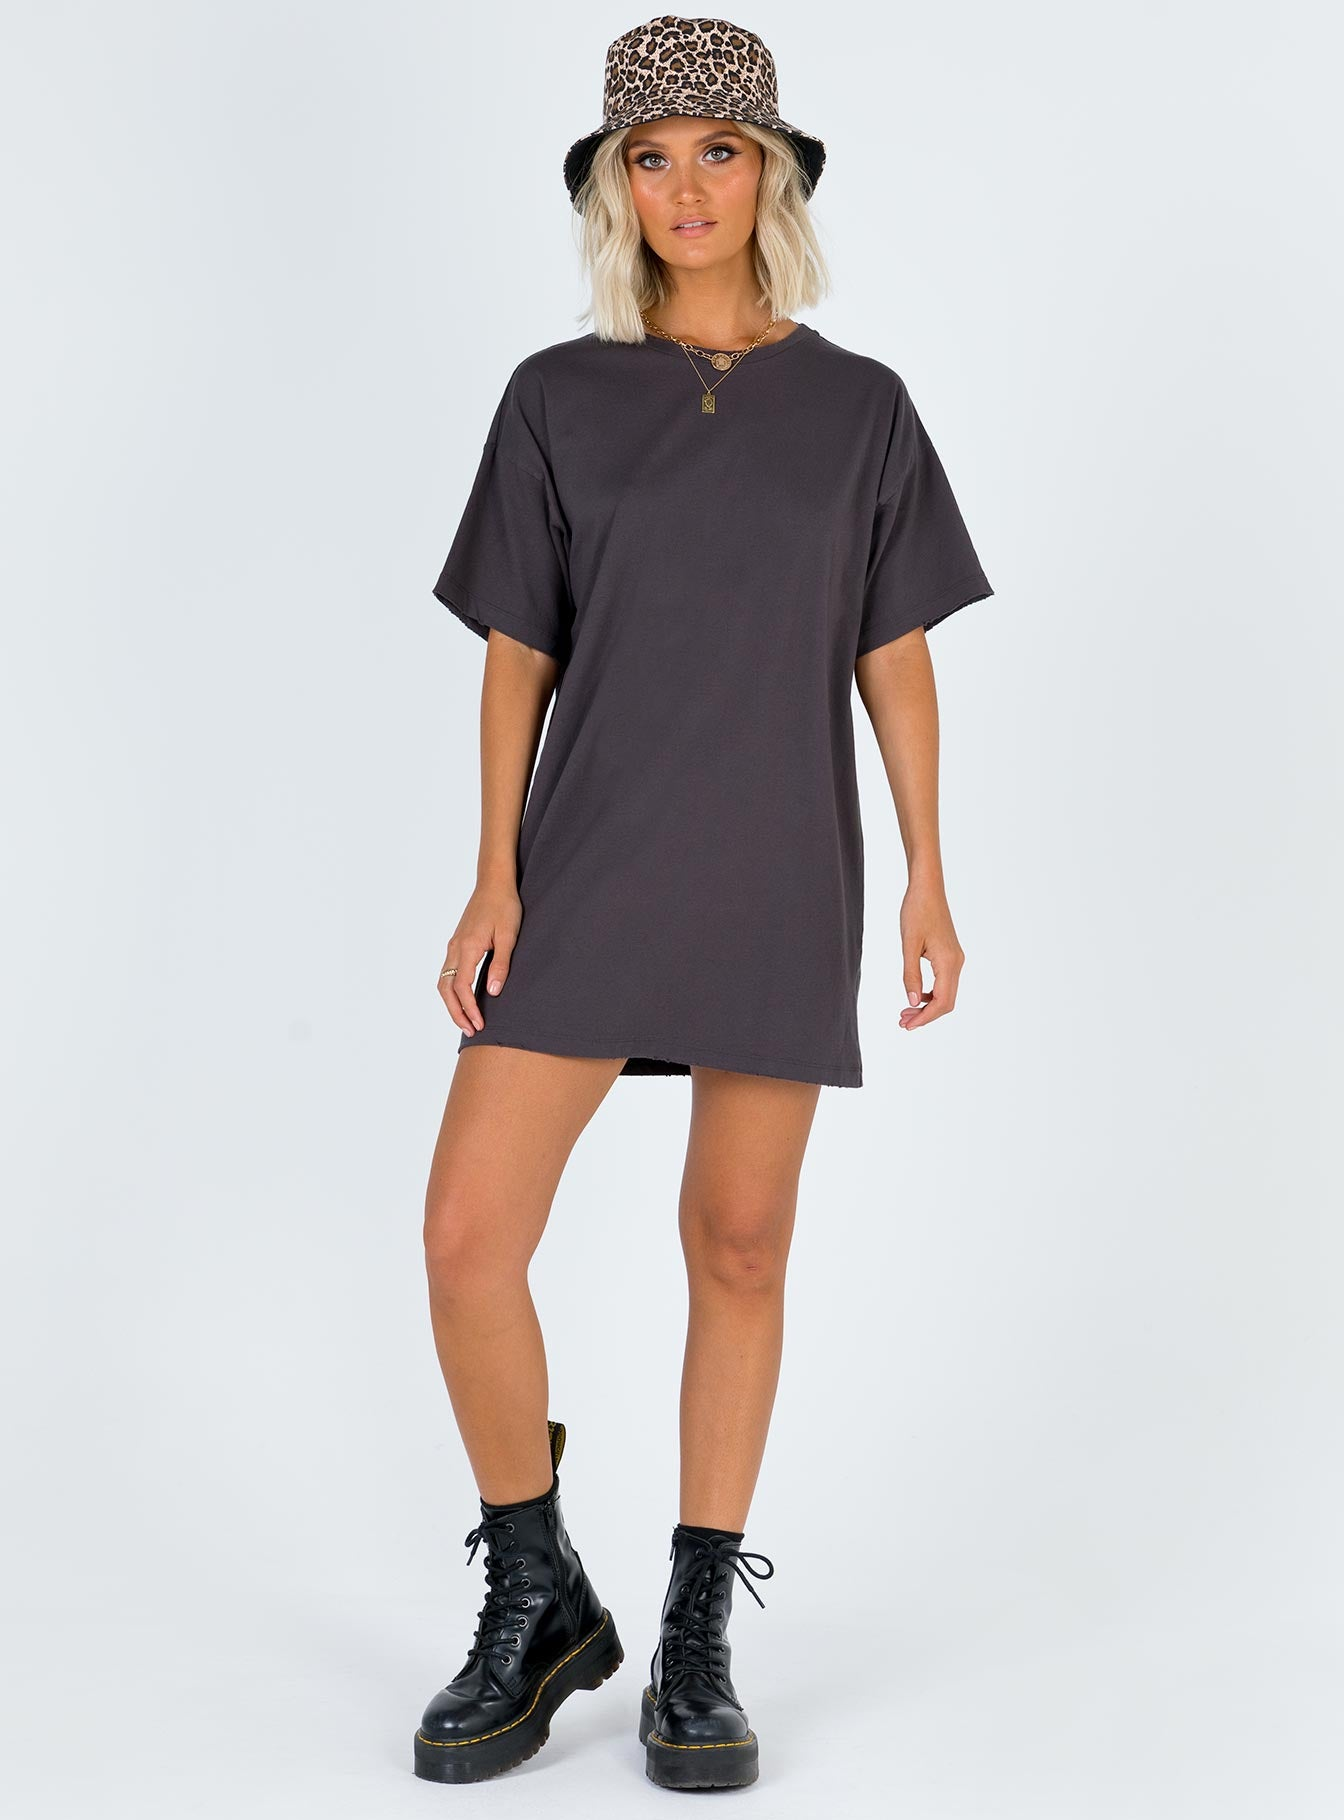 Thunderstruck Tee Mini Dress